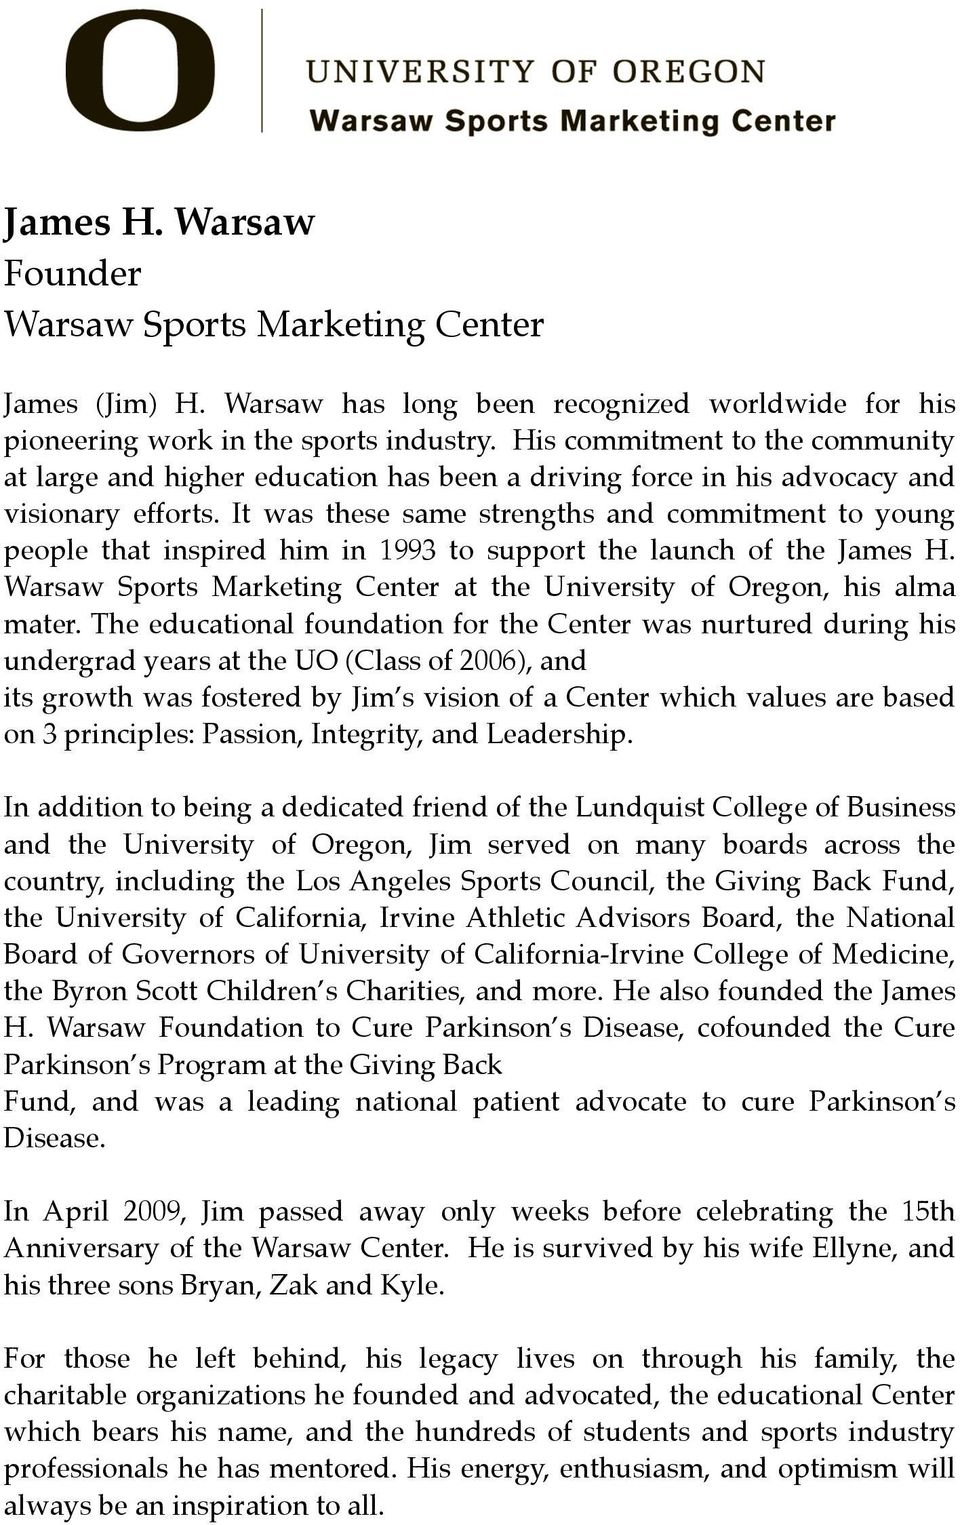 It was these same strengths and commitment to young people that inspired him in 1993 to support the launch of the James H. Warsaw Sports Marketing Center at the University of Oregon, his alma mater.